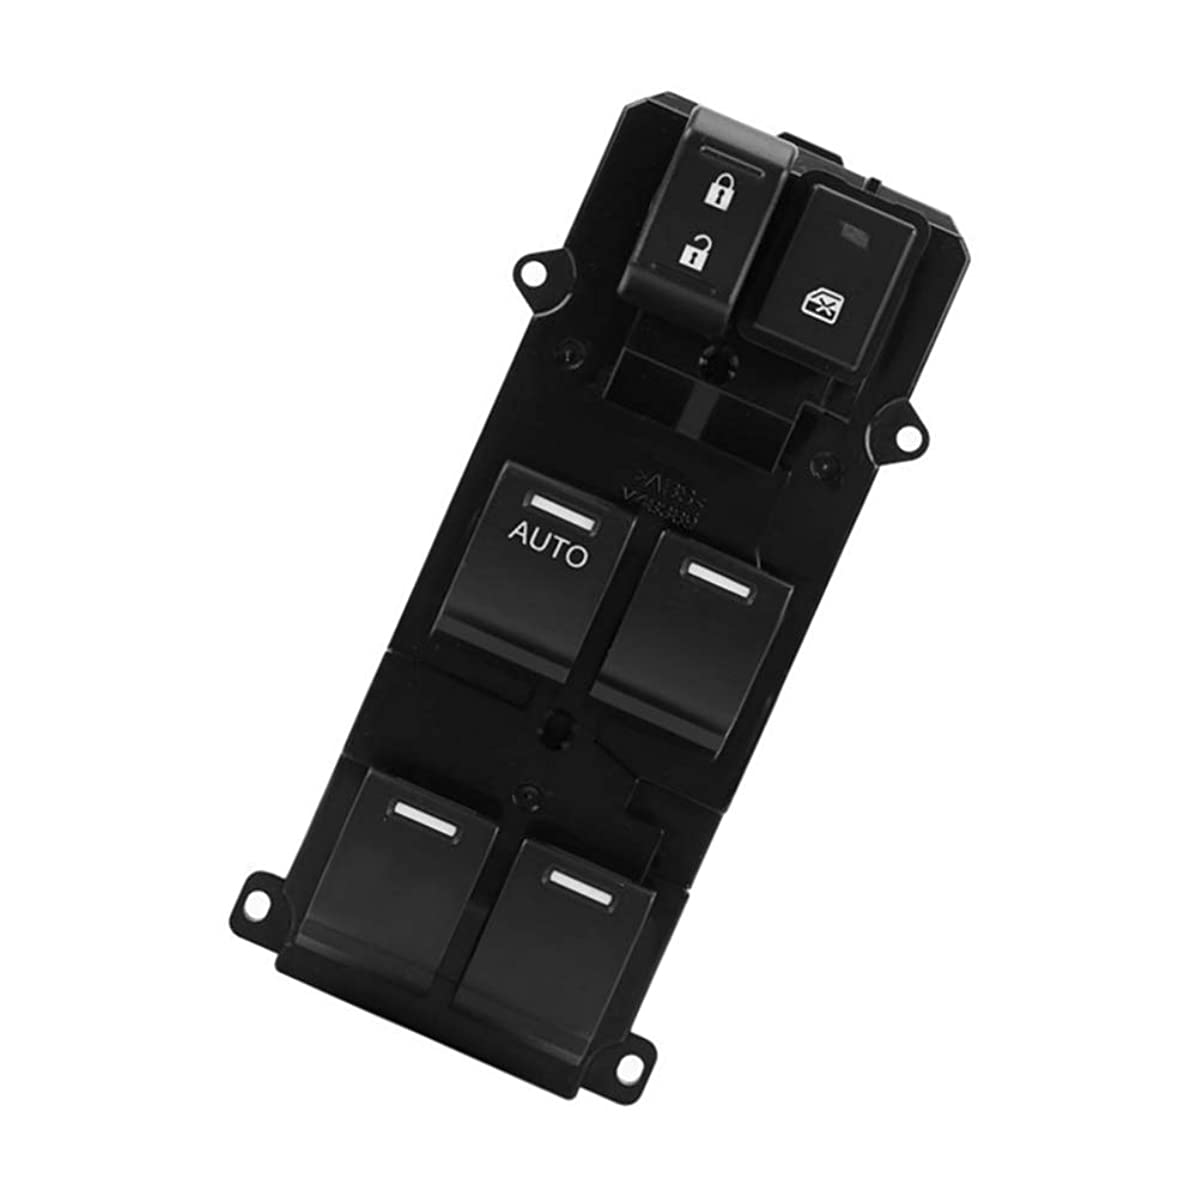 Driver Side Replacement Door Power Master Window Switch Fits For Honda CRV 2012-2015 35750-T0A-H01